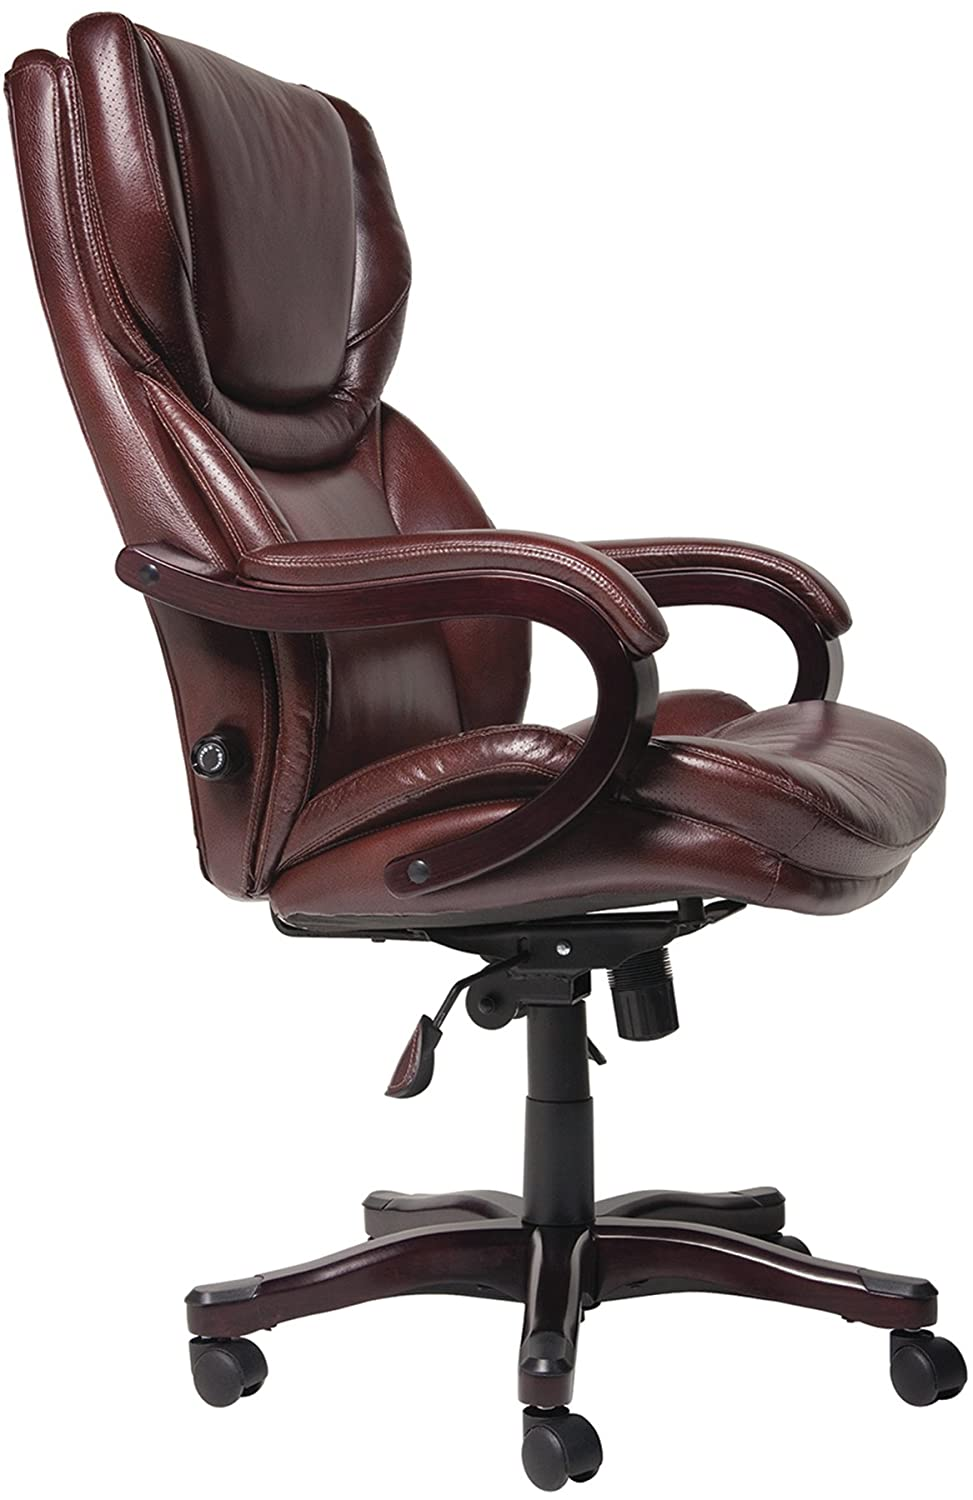 canada office walmart faux chair ip en broyhill leather chairs executive